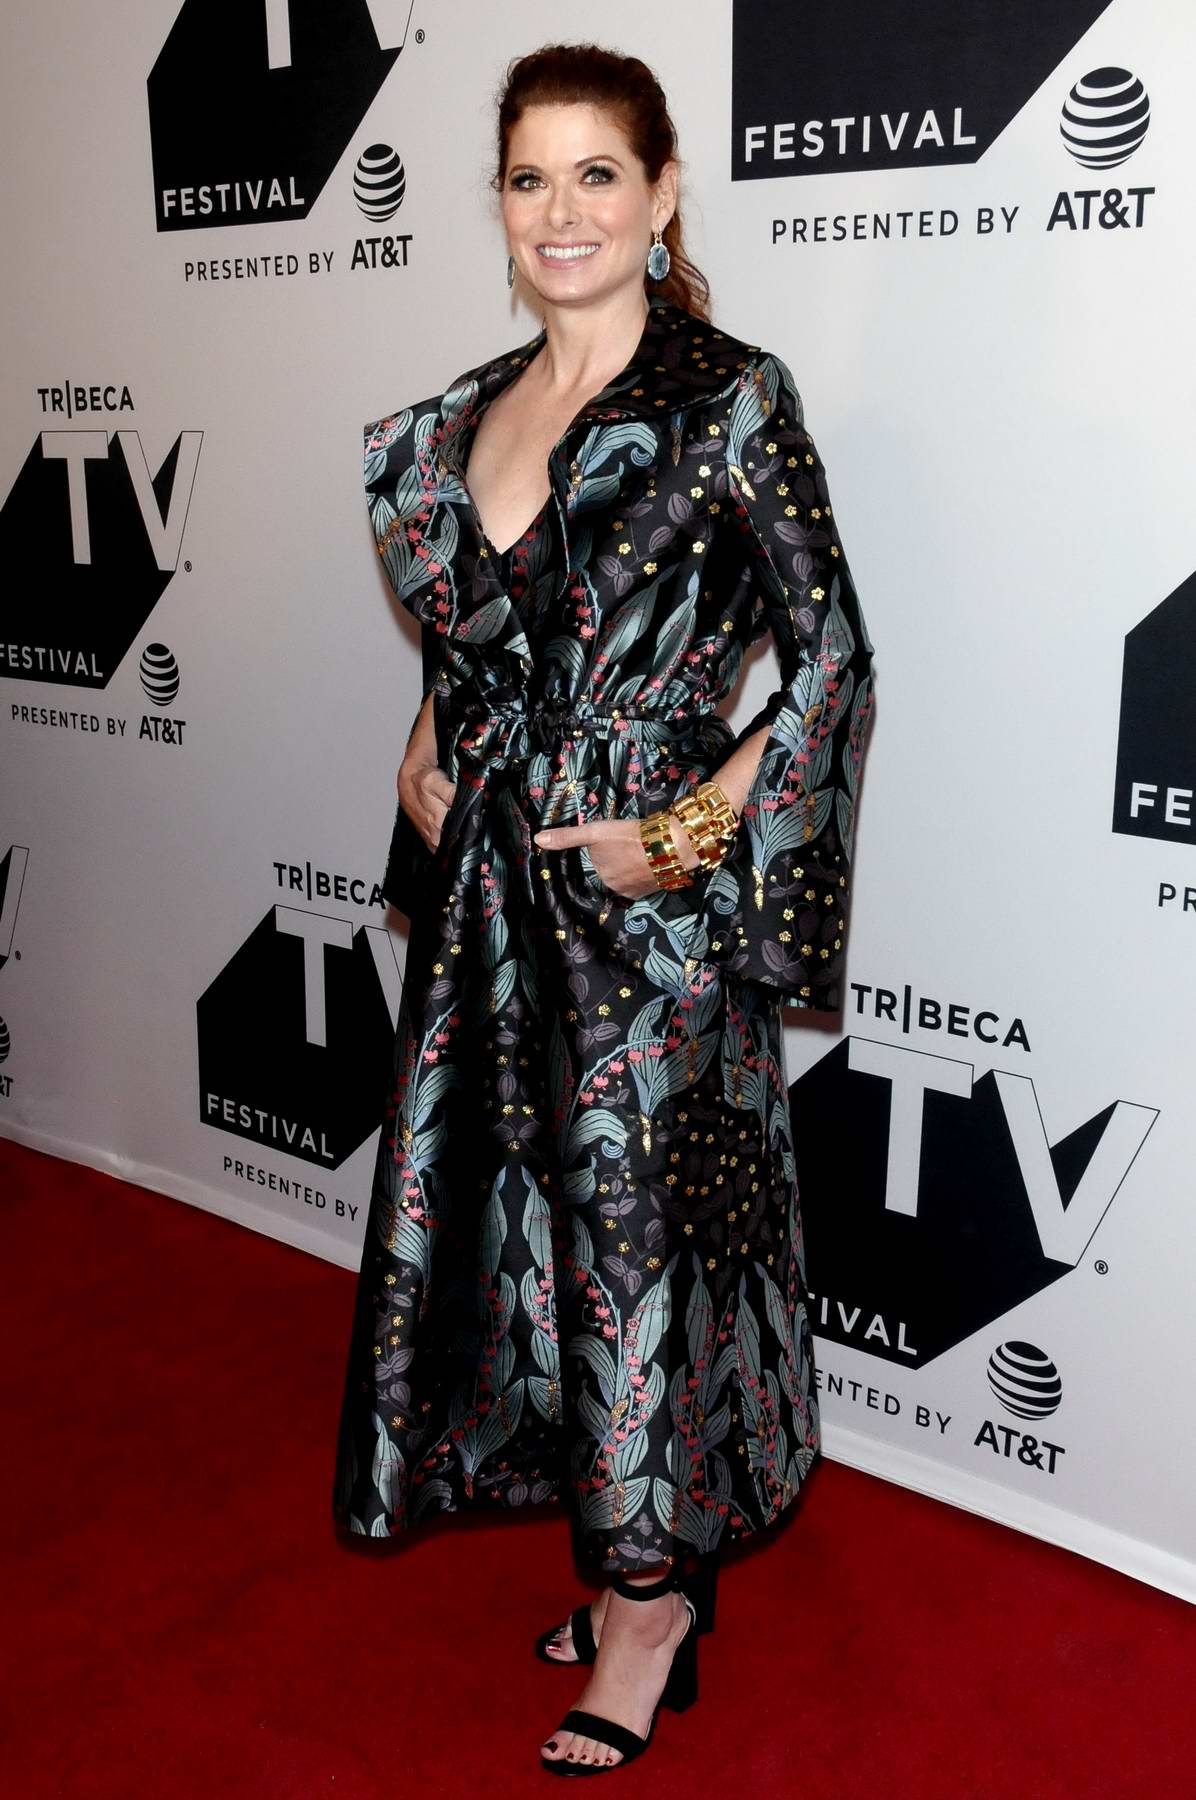 Debra Messing at the Will and Grace: An exclusive celebration and conversation with cast and creators during Tribeca TV Festival in New York